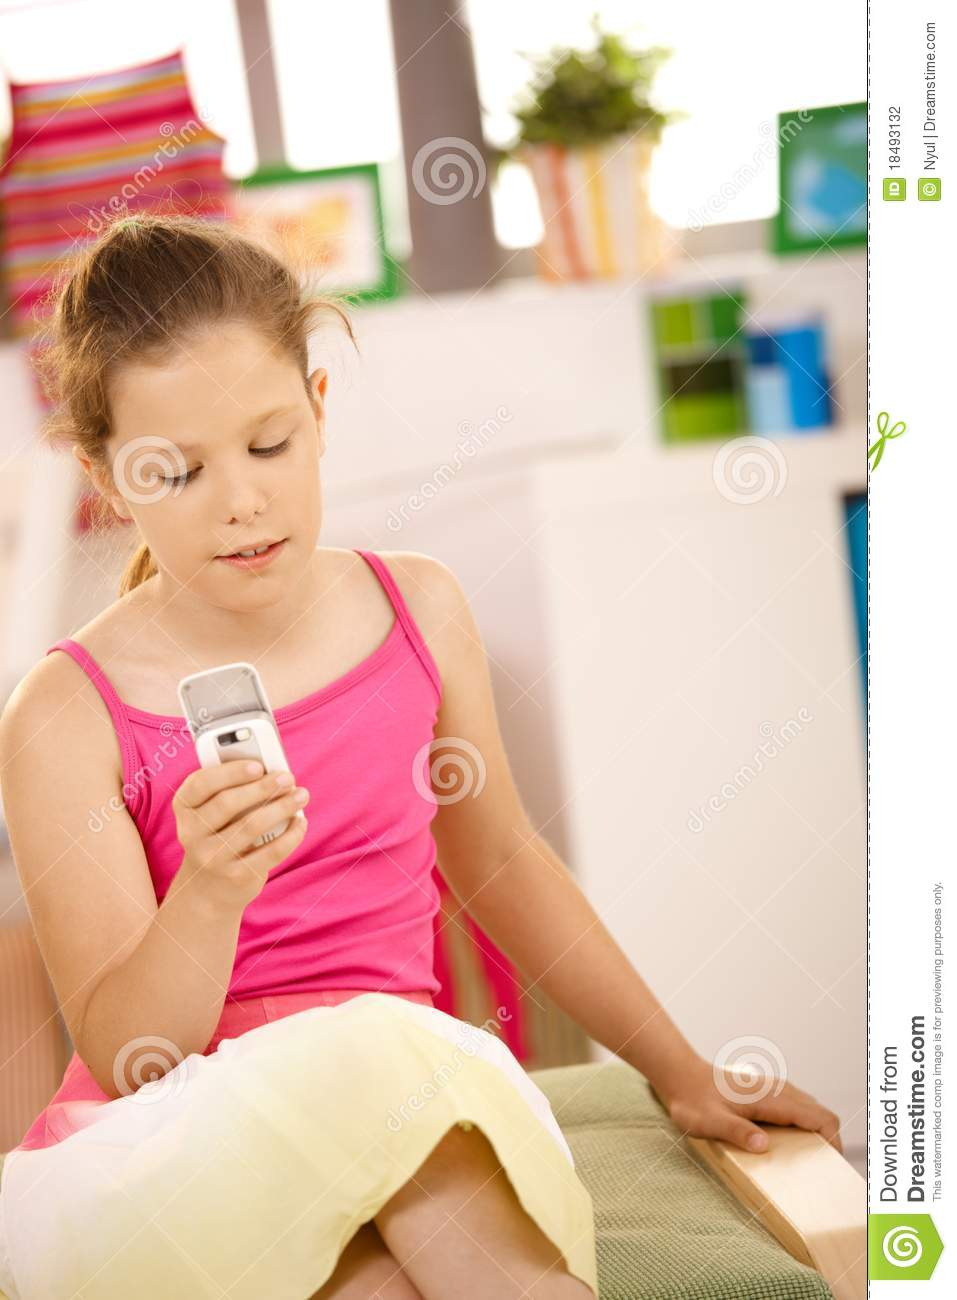 Small girl texting on phone at home